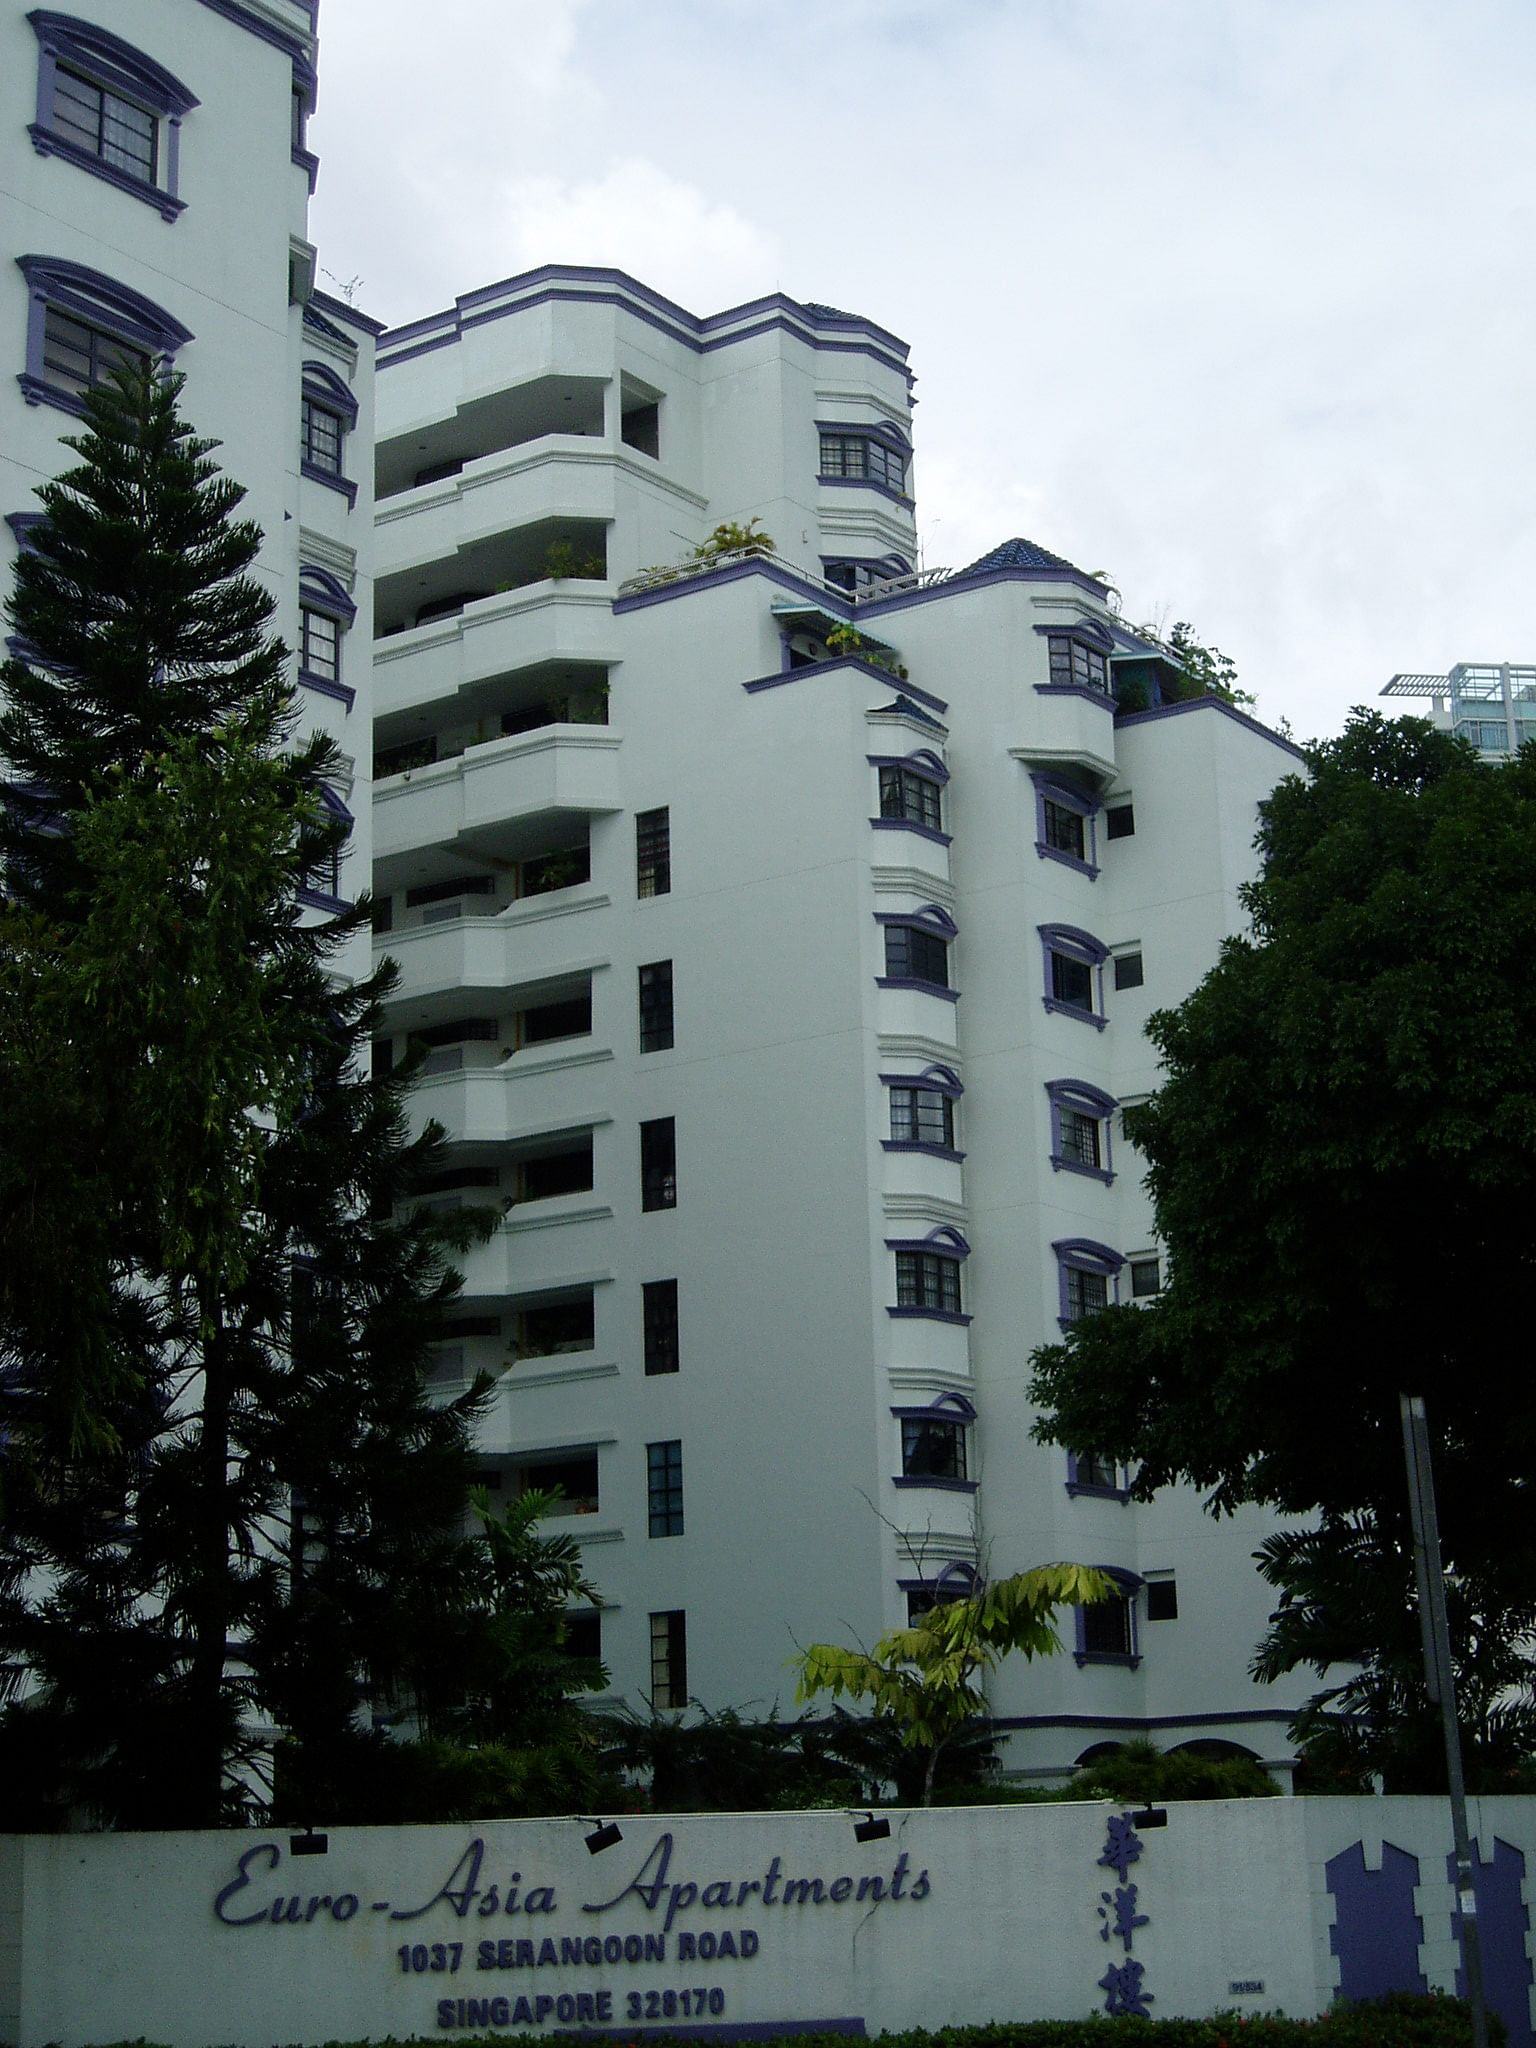 http://www.srx.com.sg/singapore-property-news/11722/euro-asia-apartments-eyes-collective-sale